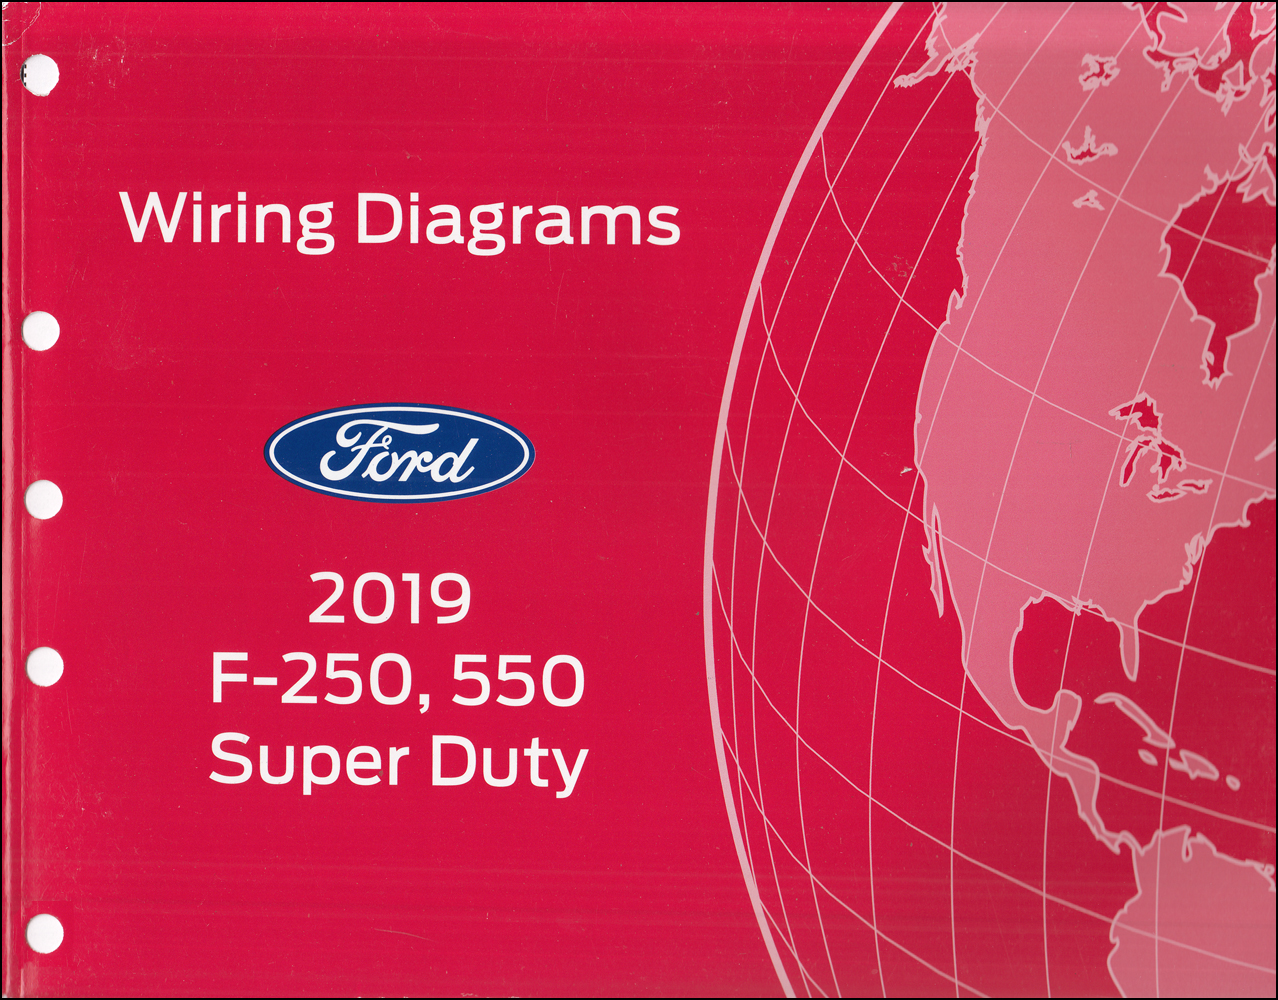 2019 ford f250-f550 super duty pickup truck wiring diagram manual original  faxon auto literature